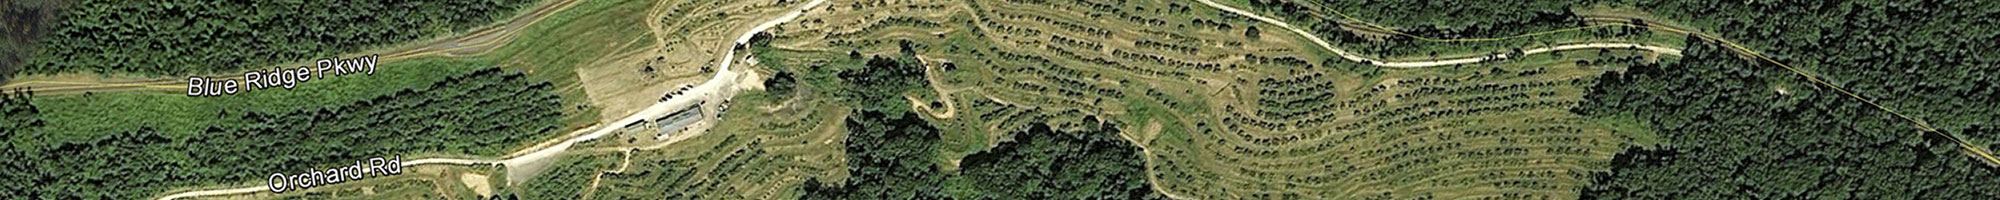 Topographical map of the Orchard at Altapass off the Blue Ridge Parkway in North Carolina